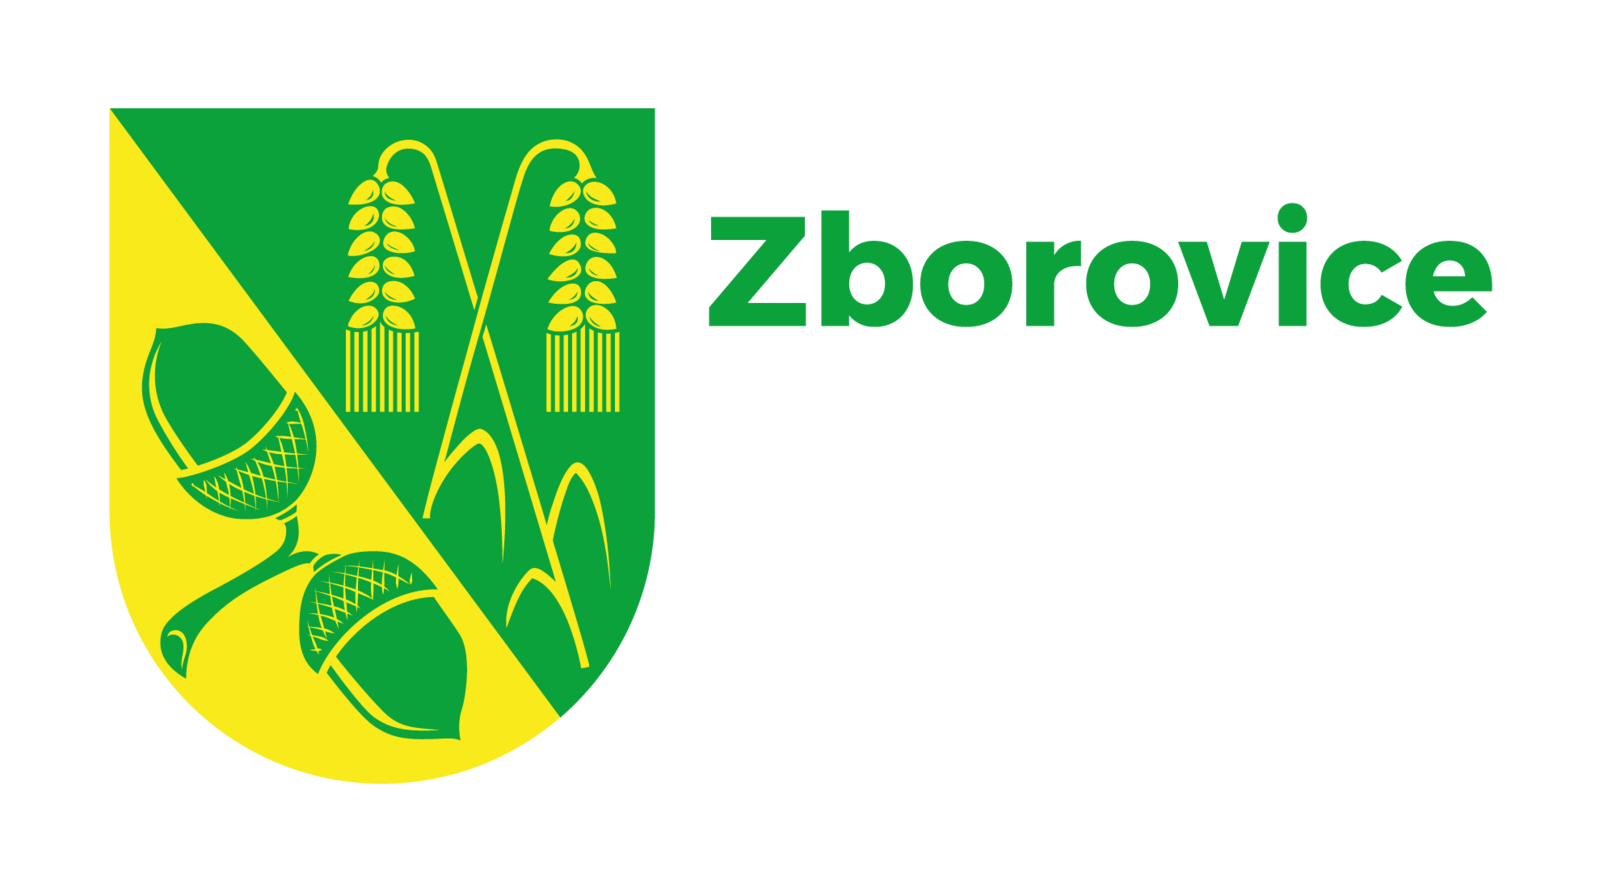 Logo Zborovice.png